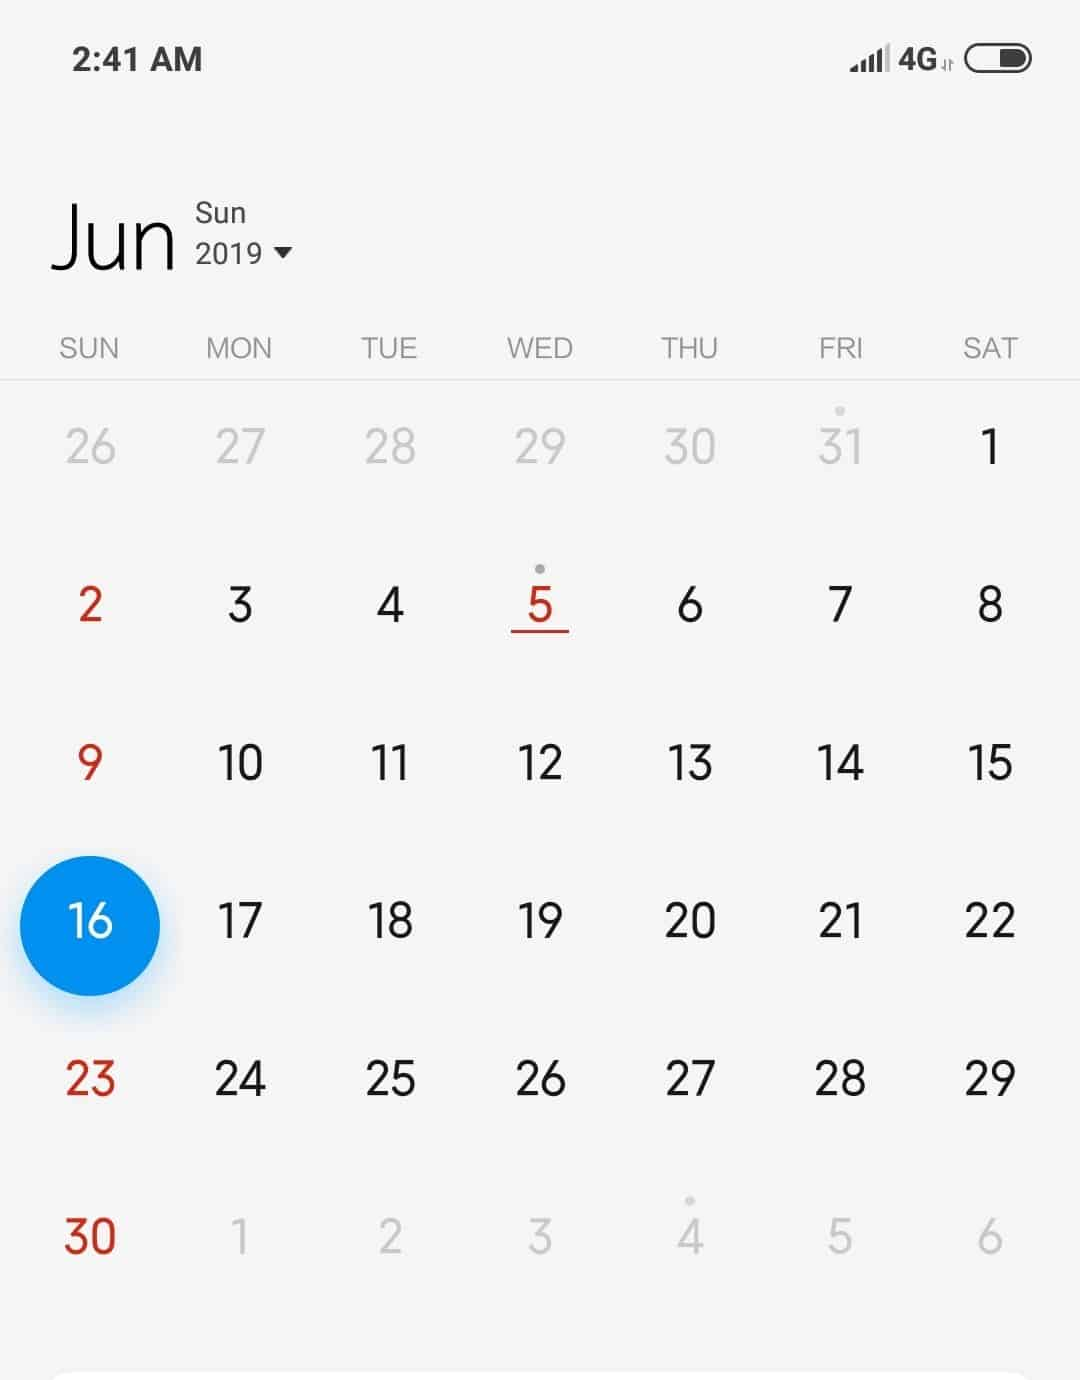 MIUI 10 Calendar App (Sample Test Cases for Calendar)